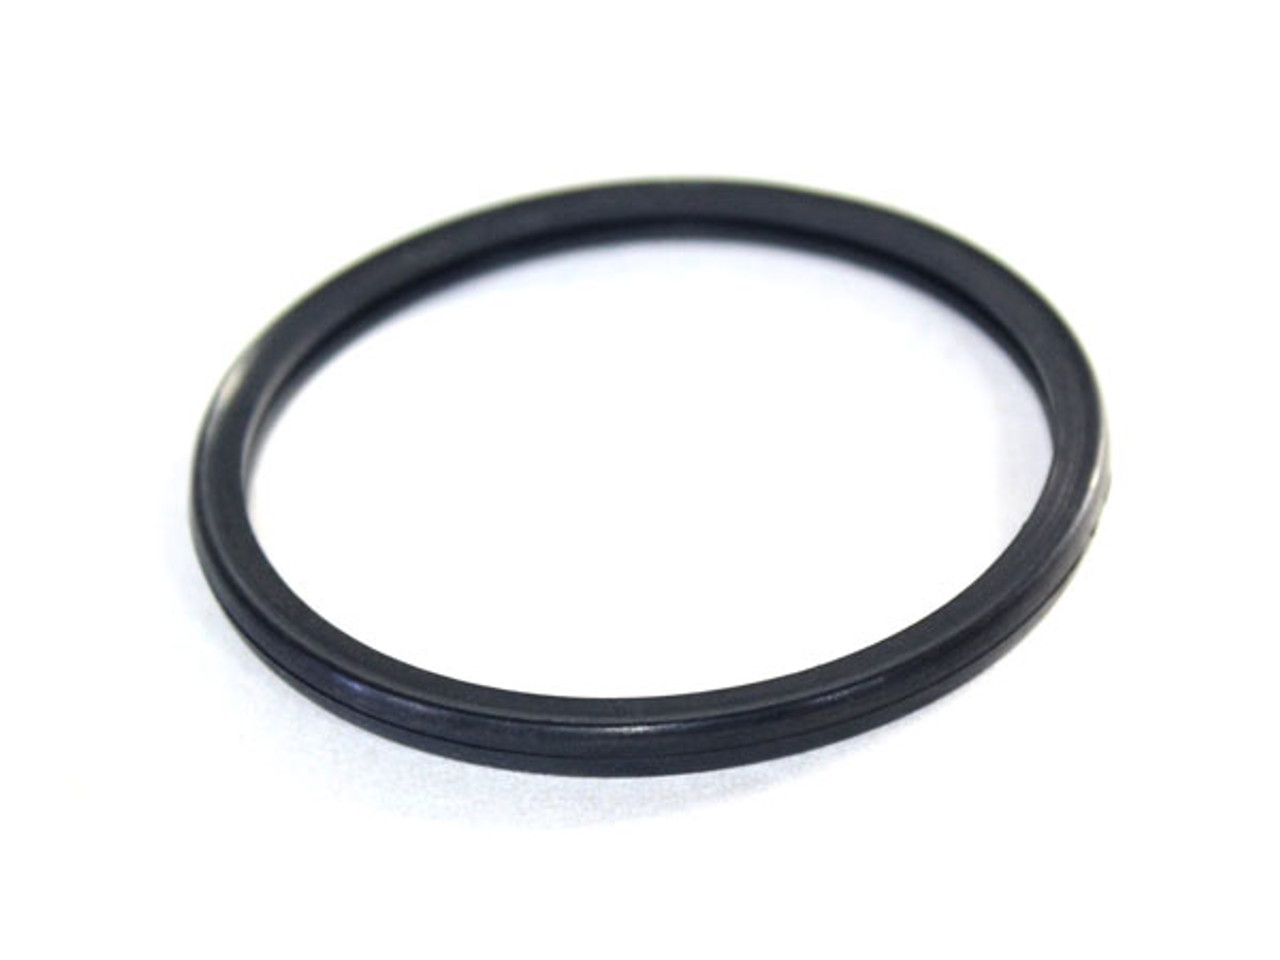 01-10 DURAMAX THERMOSTAT SEAL(FRONT OR REAR)